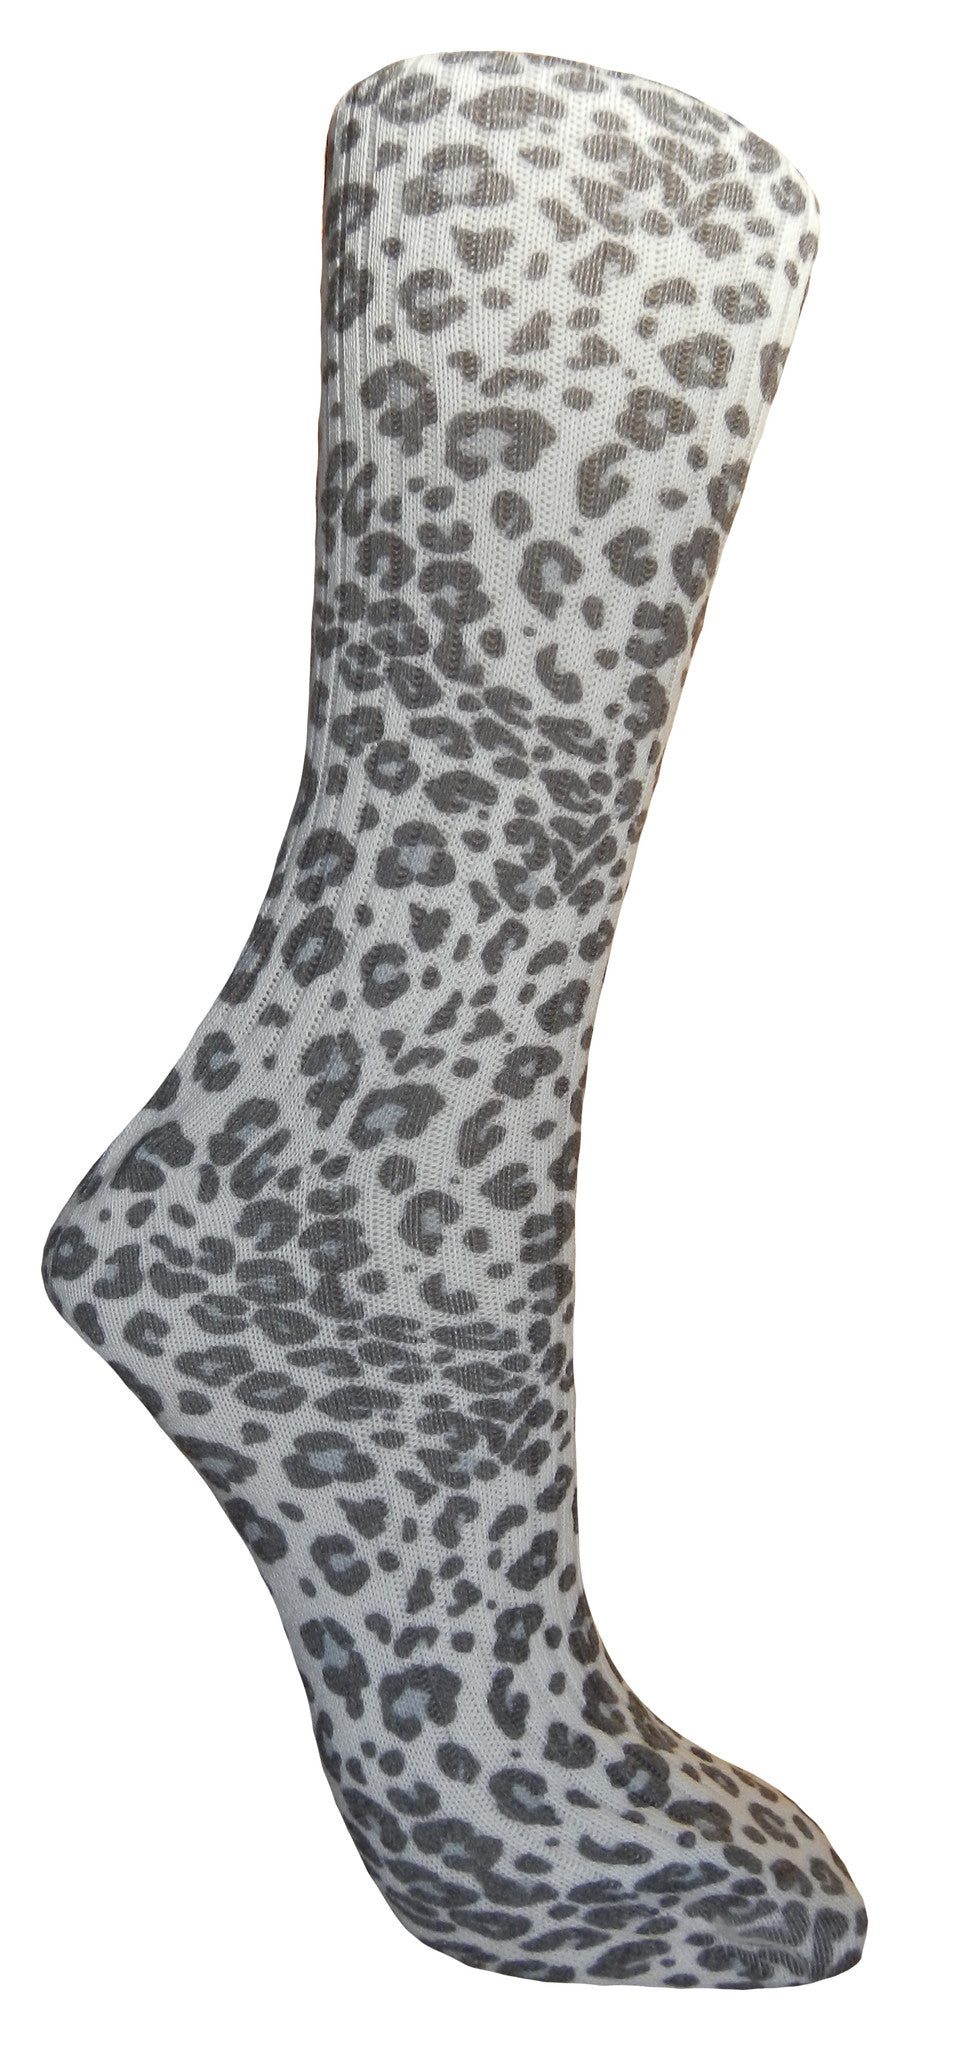 Soxtrot Cotton Sox - Zoo Style